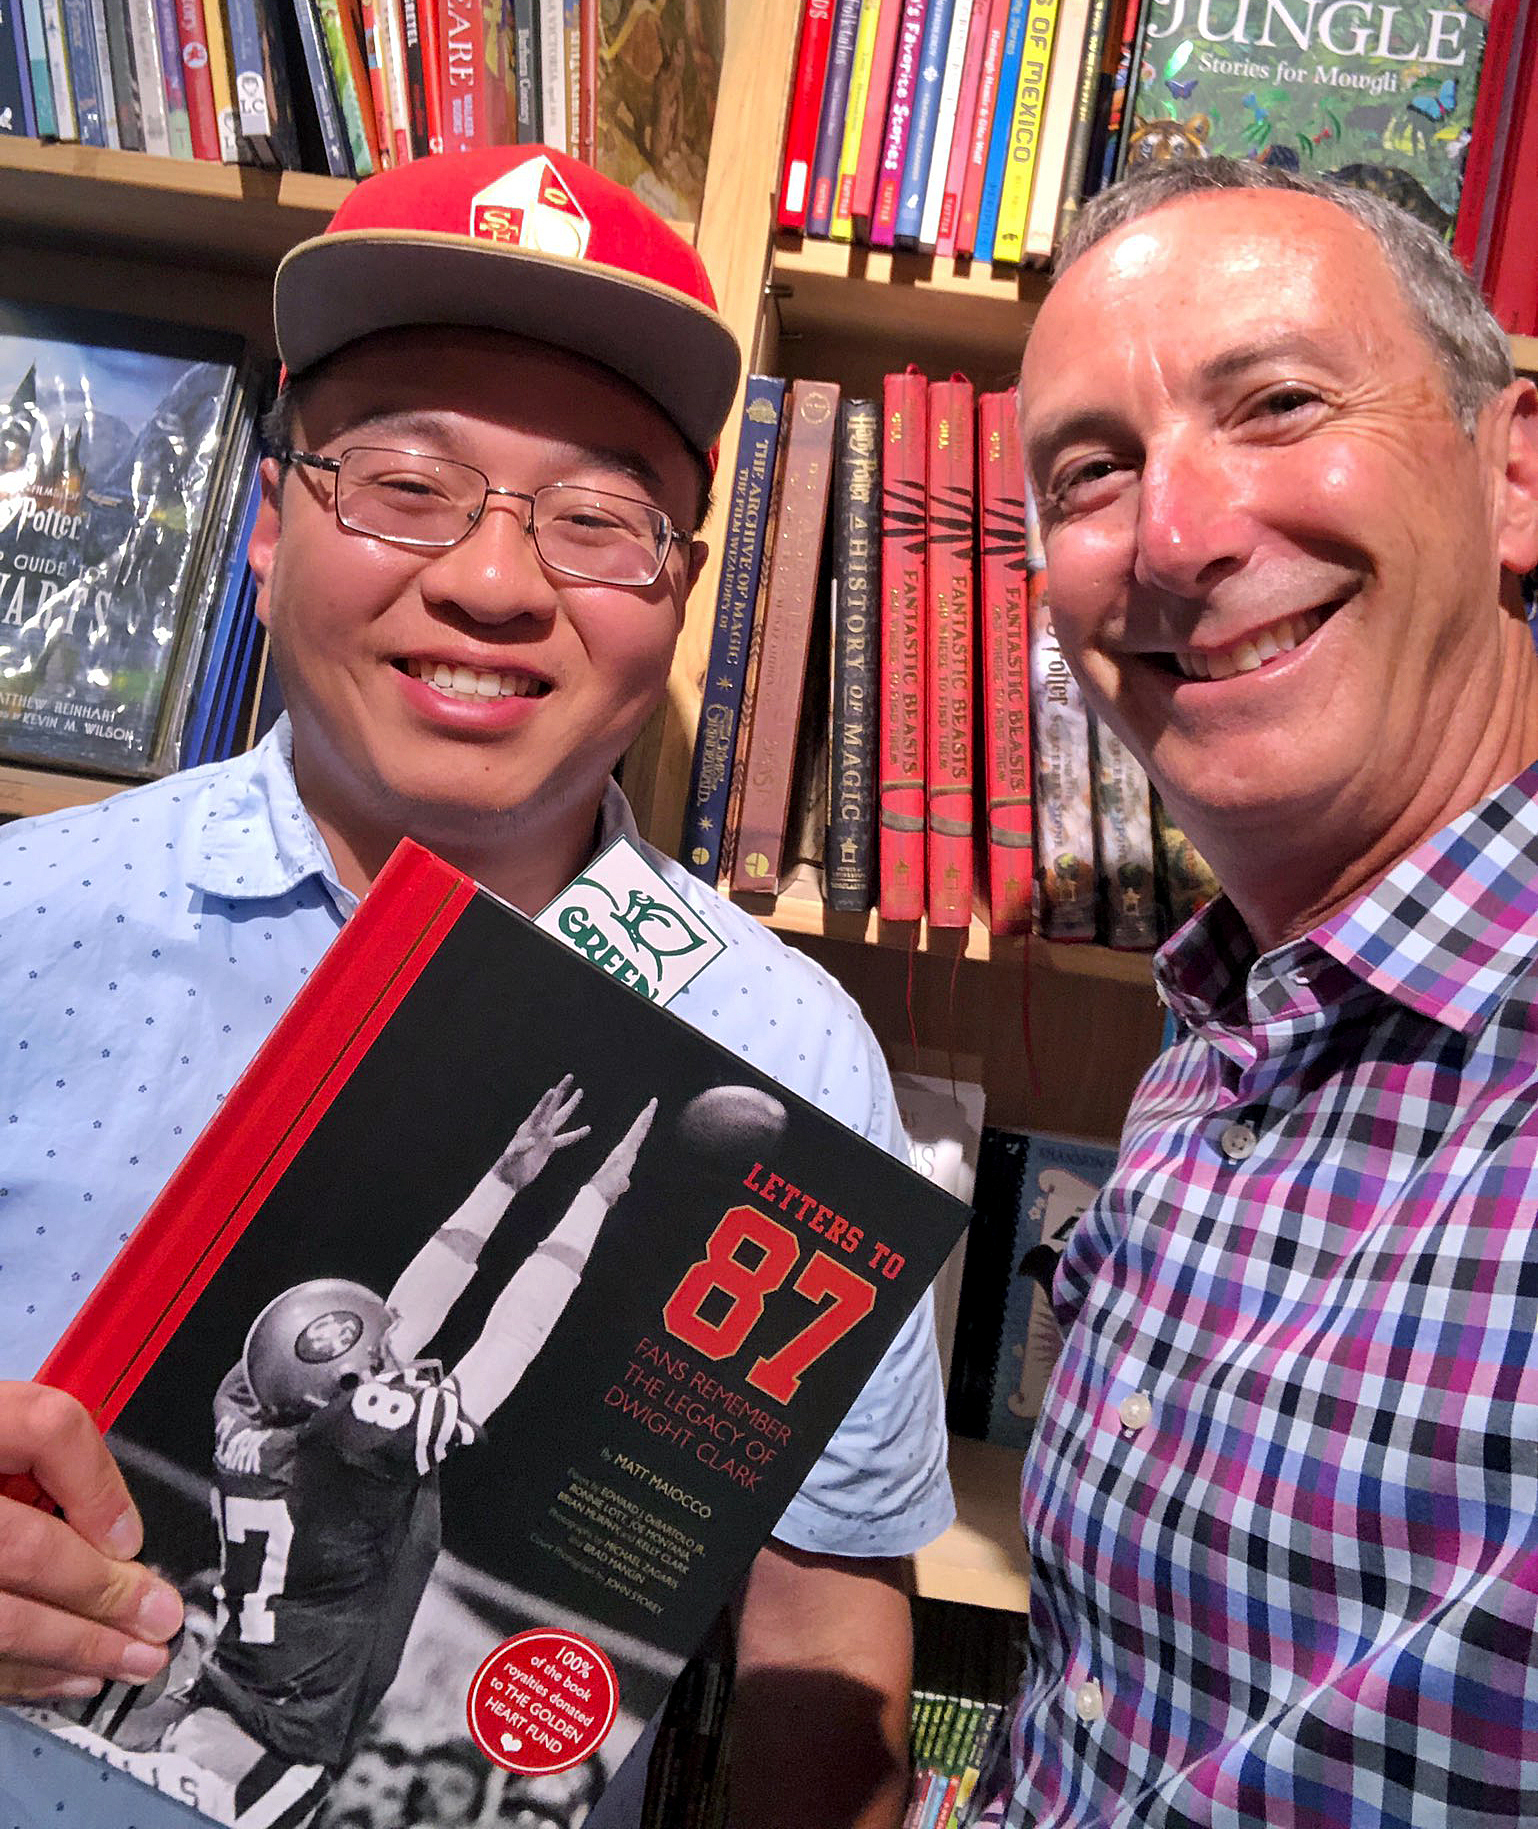 @MaioccoNBCS - It was great to meet Brian Du, whose letter about his father, a POW for 10 years after Saigon fell, deeply touched Dwight Clark. Brian's inspiring words are in #LettersTo87.